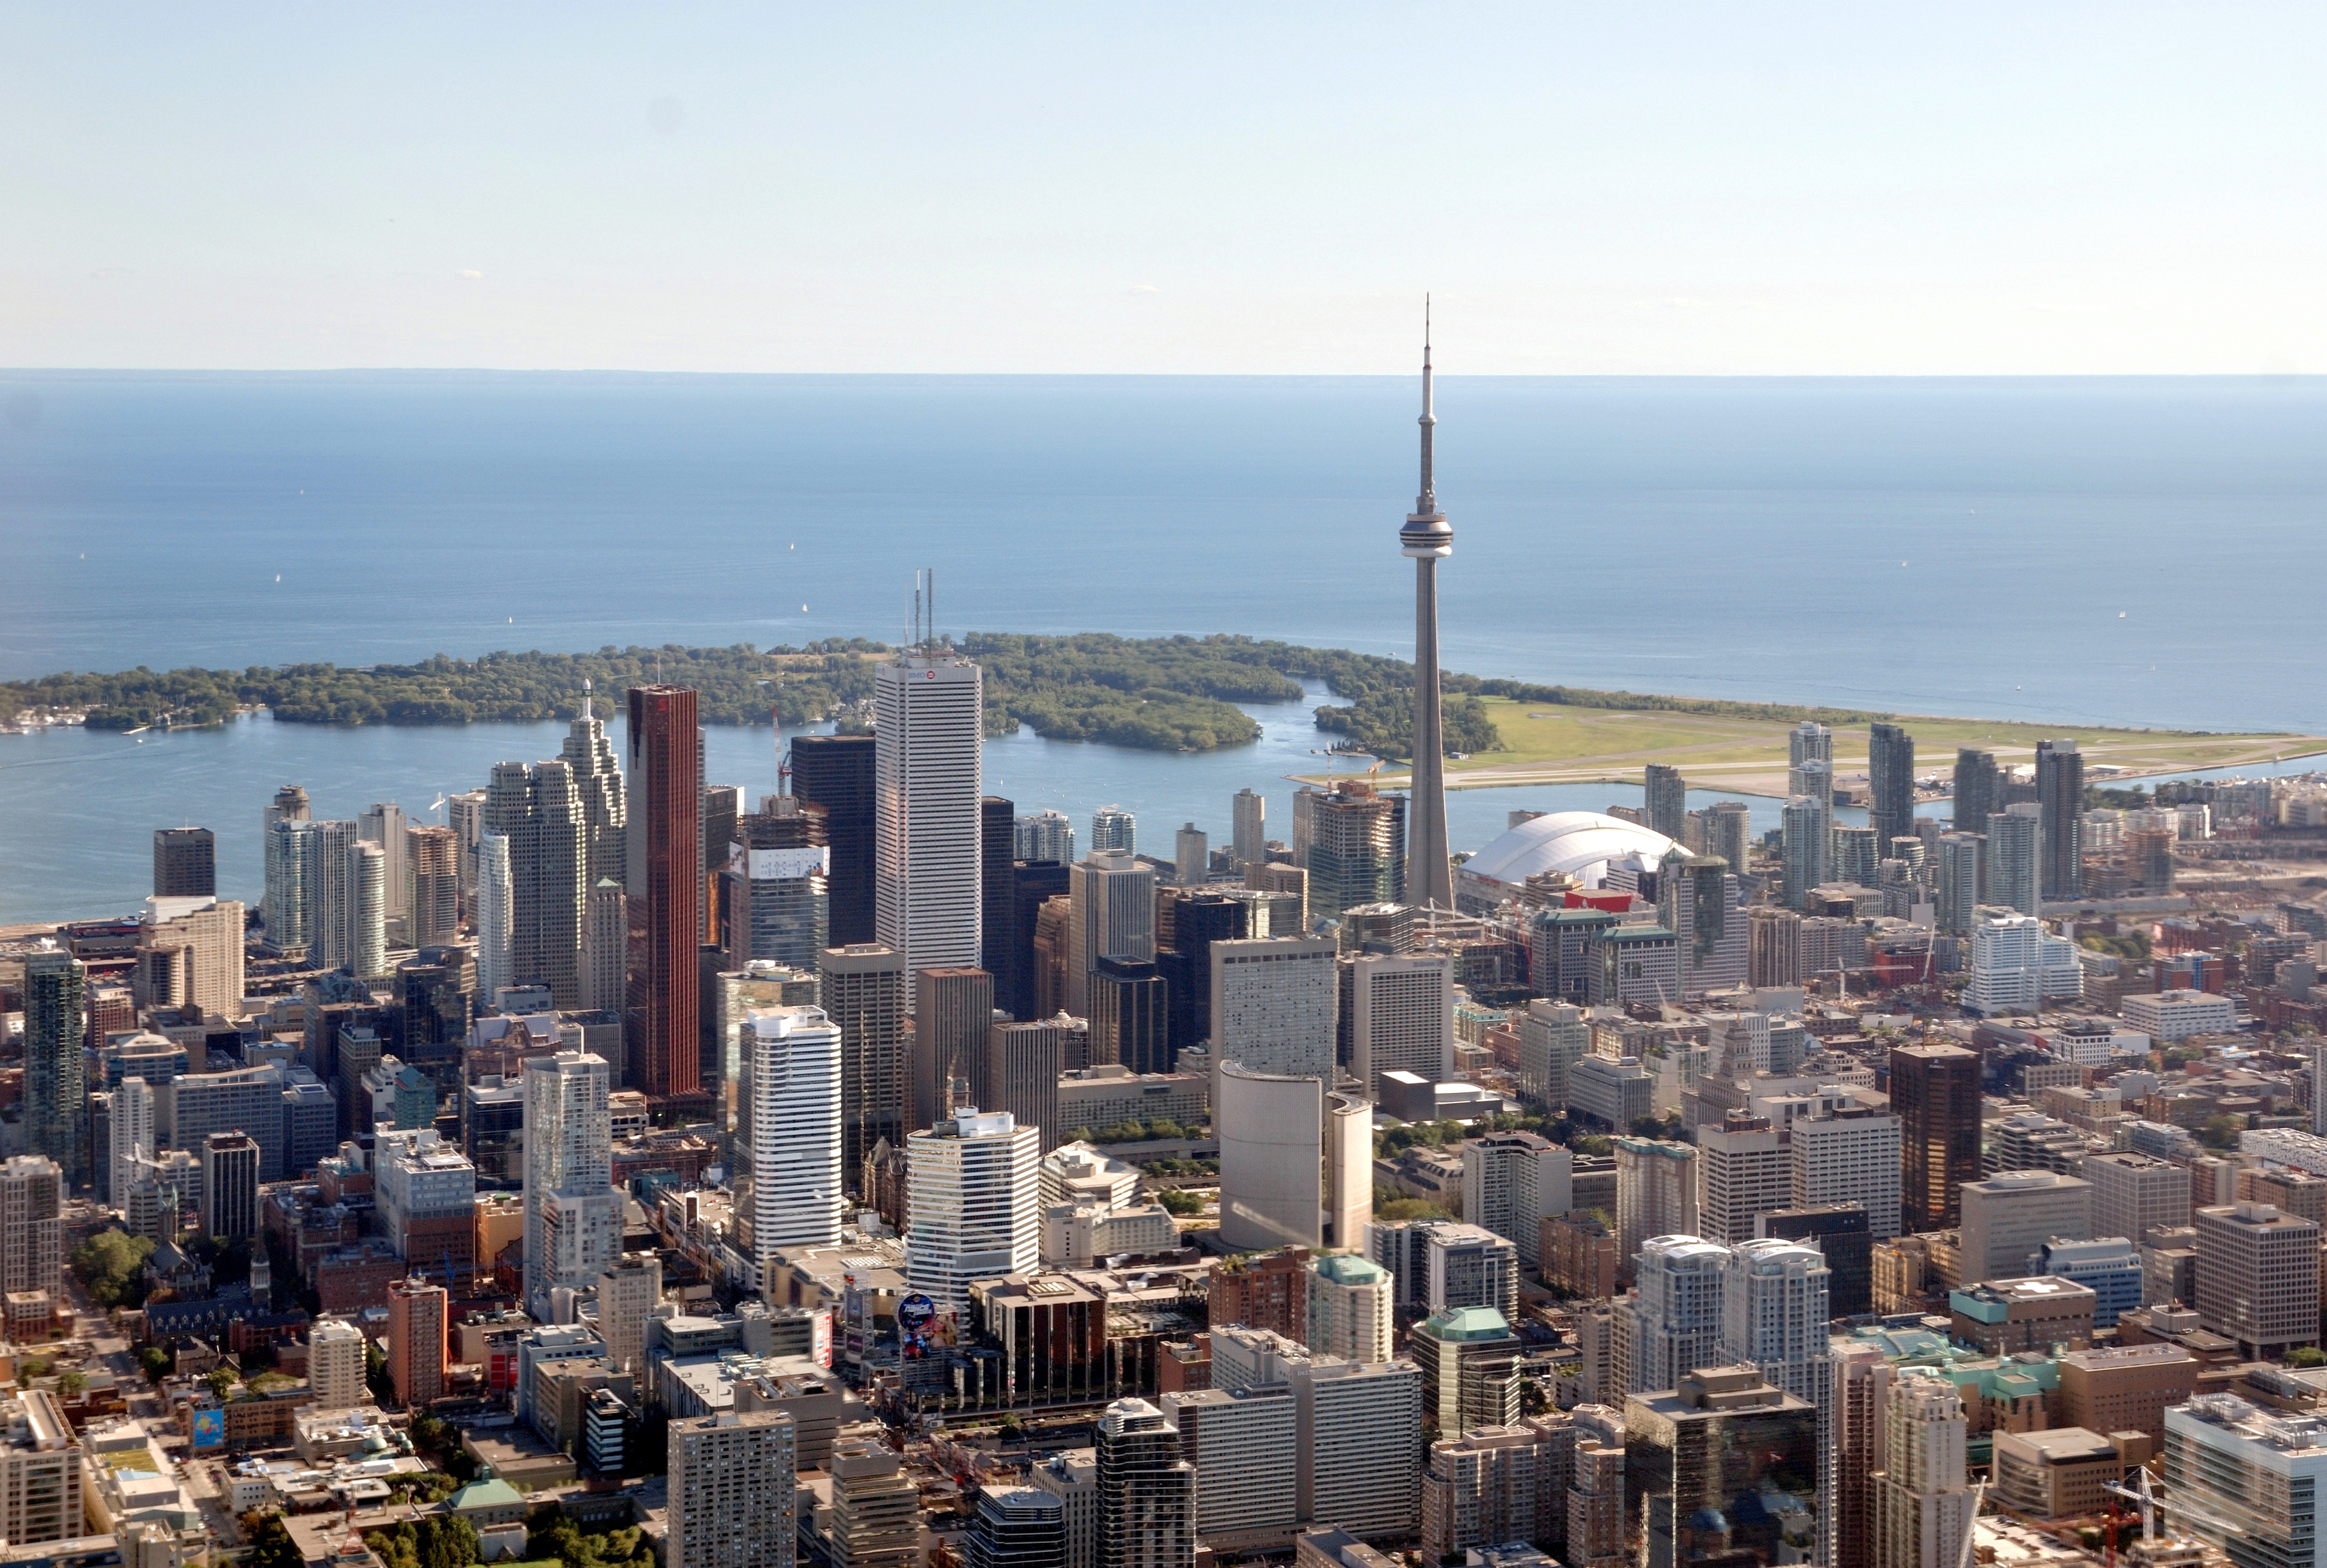 Aerial view of downtown Toronto with view of Toronto Islands and Lake Ontario in the background.jpg - Thalesgroup